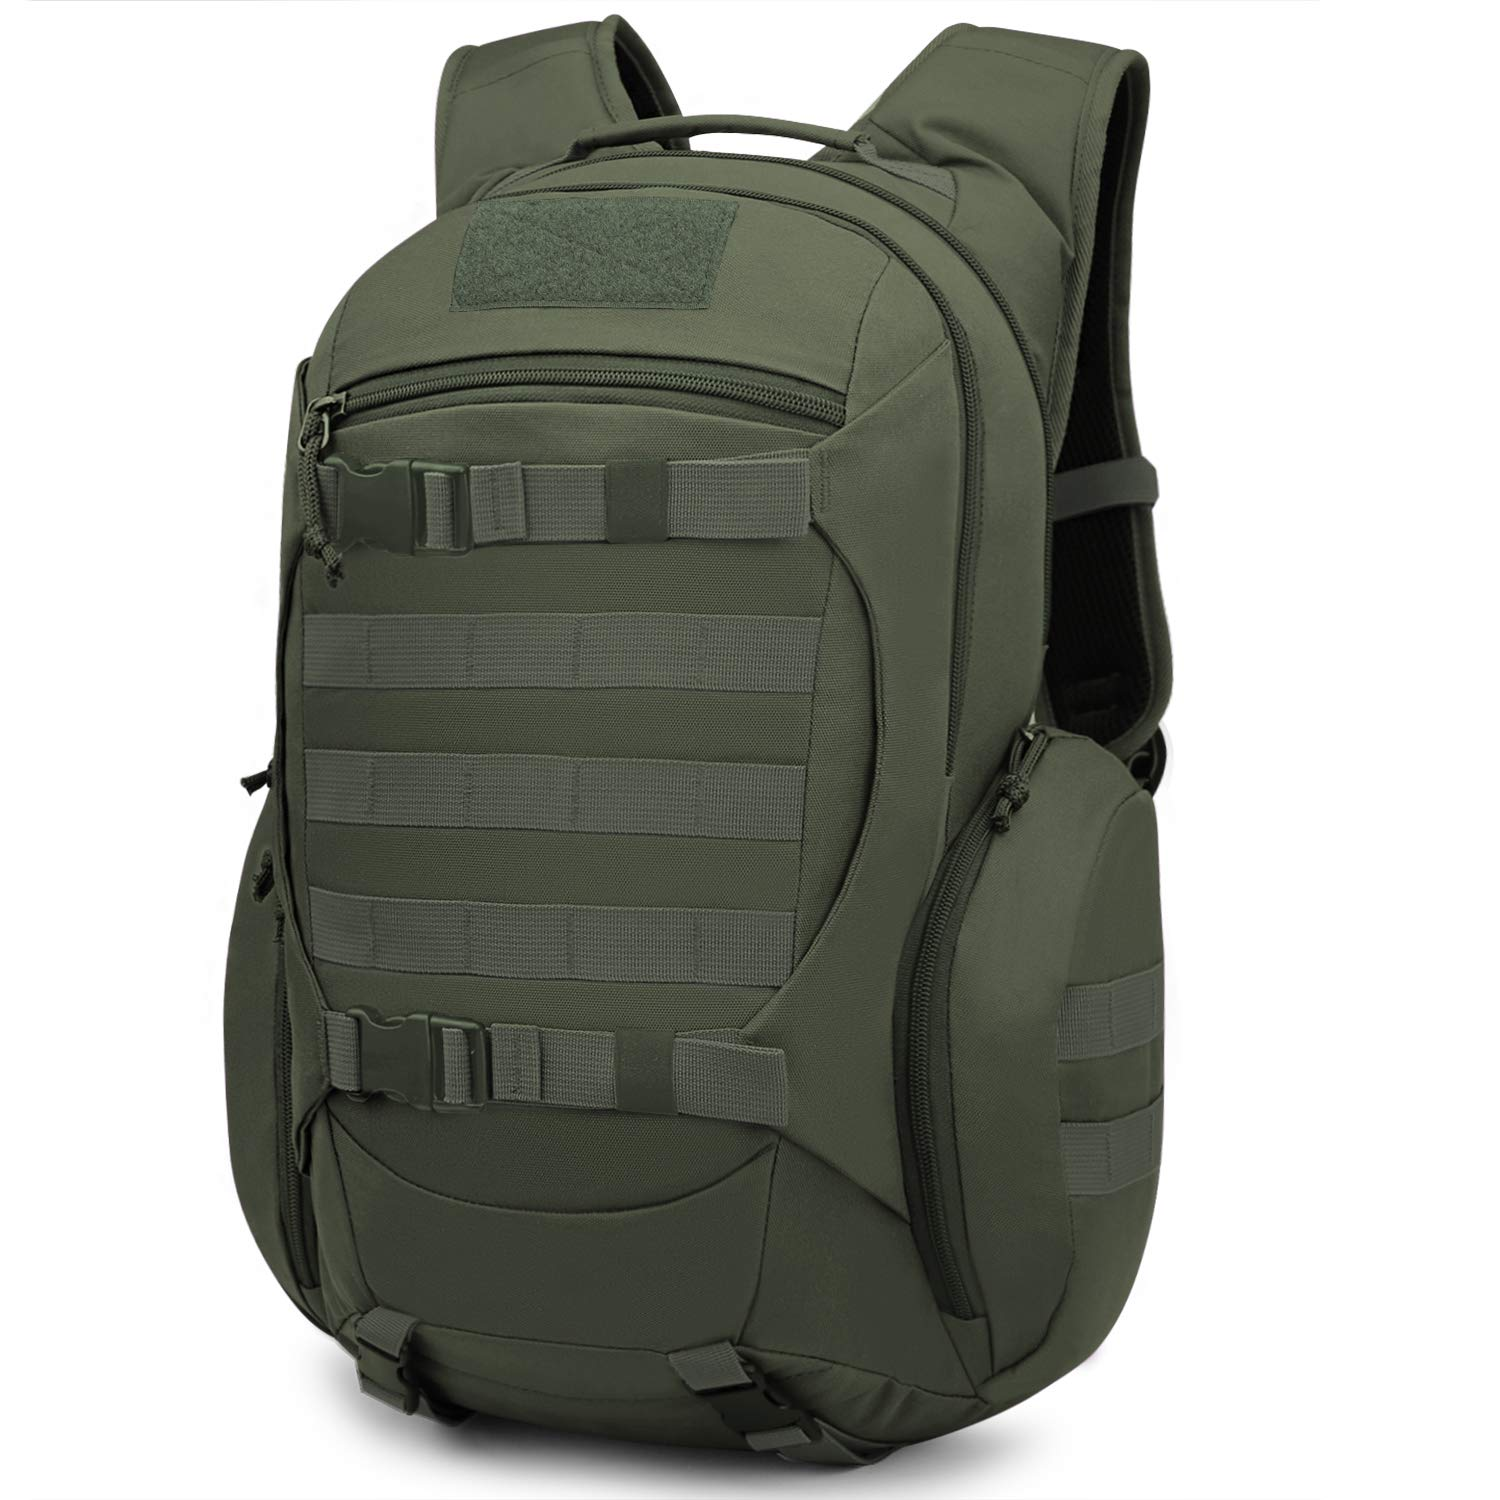 fc760beff1 Amazon.com   Mardingtop 28L Tactical Backpacks Molle Hiking daypacks for Camping  Hiking Military Traveling 28L-Army Green   Sports   Outdoors